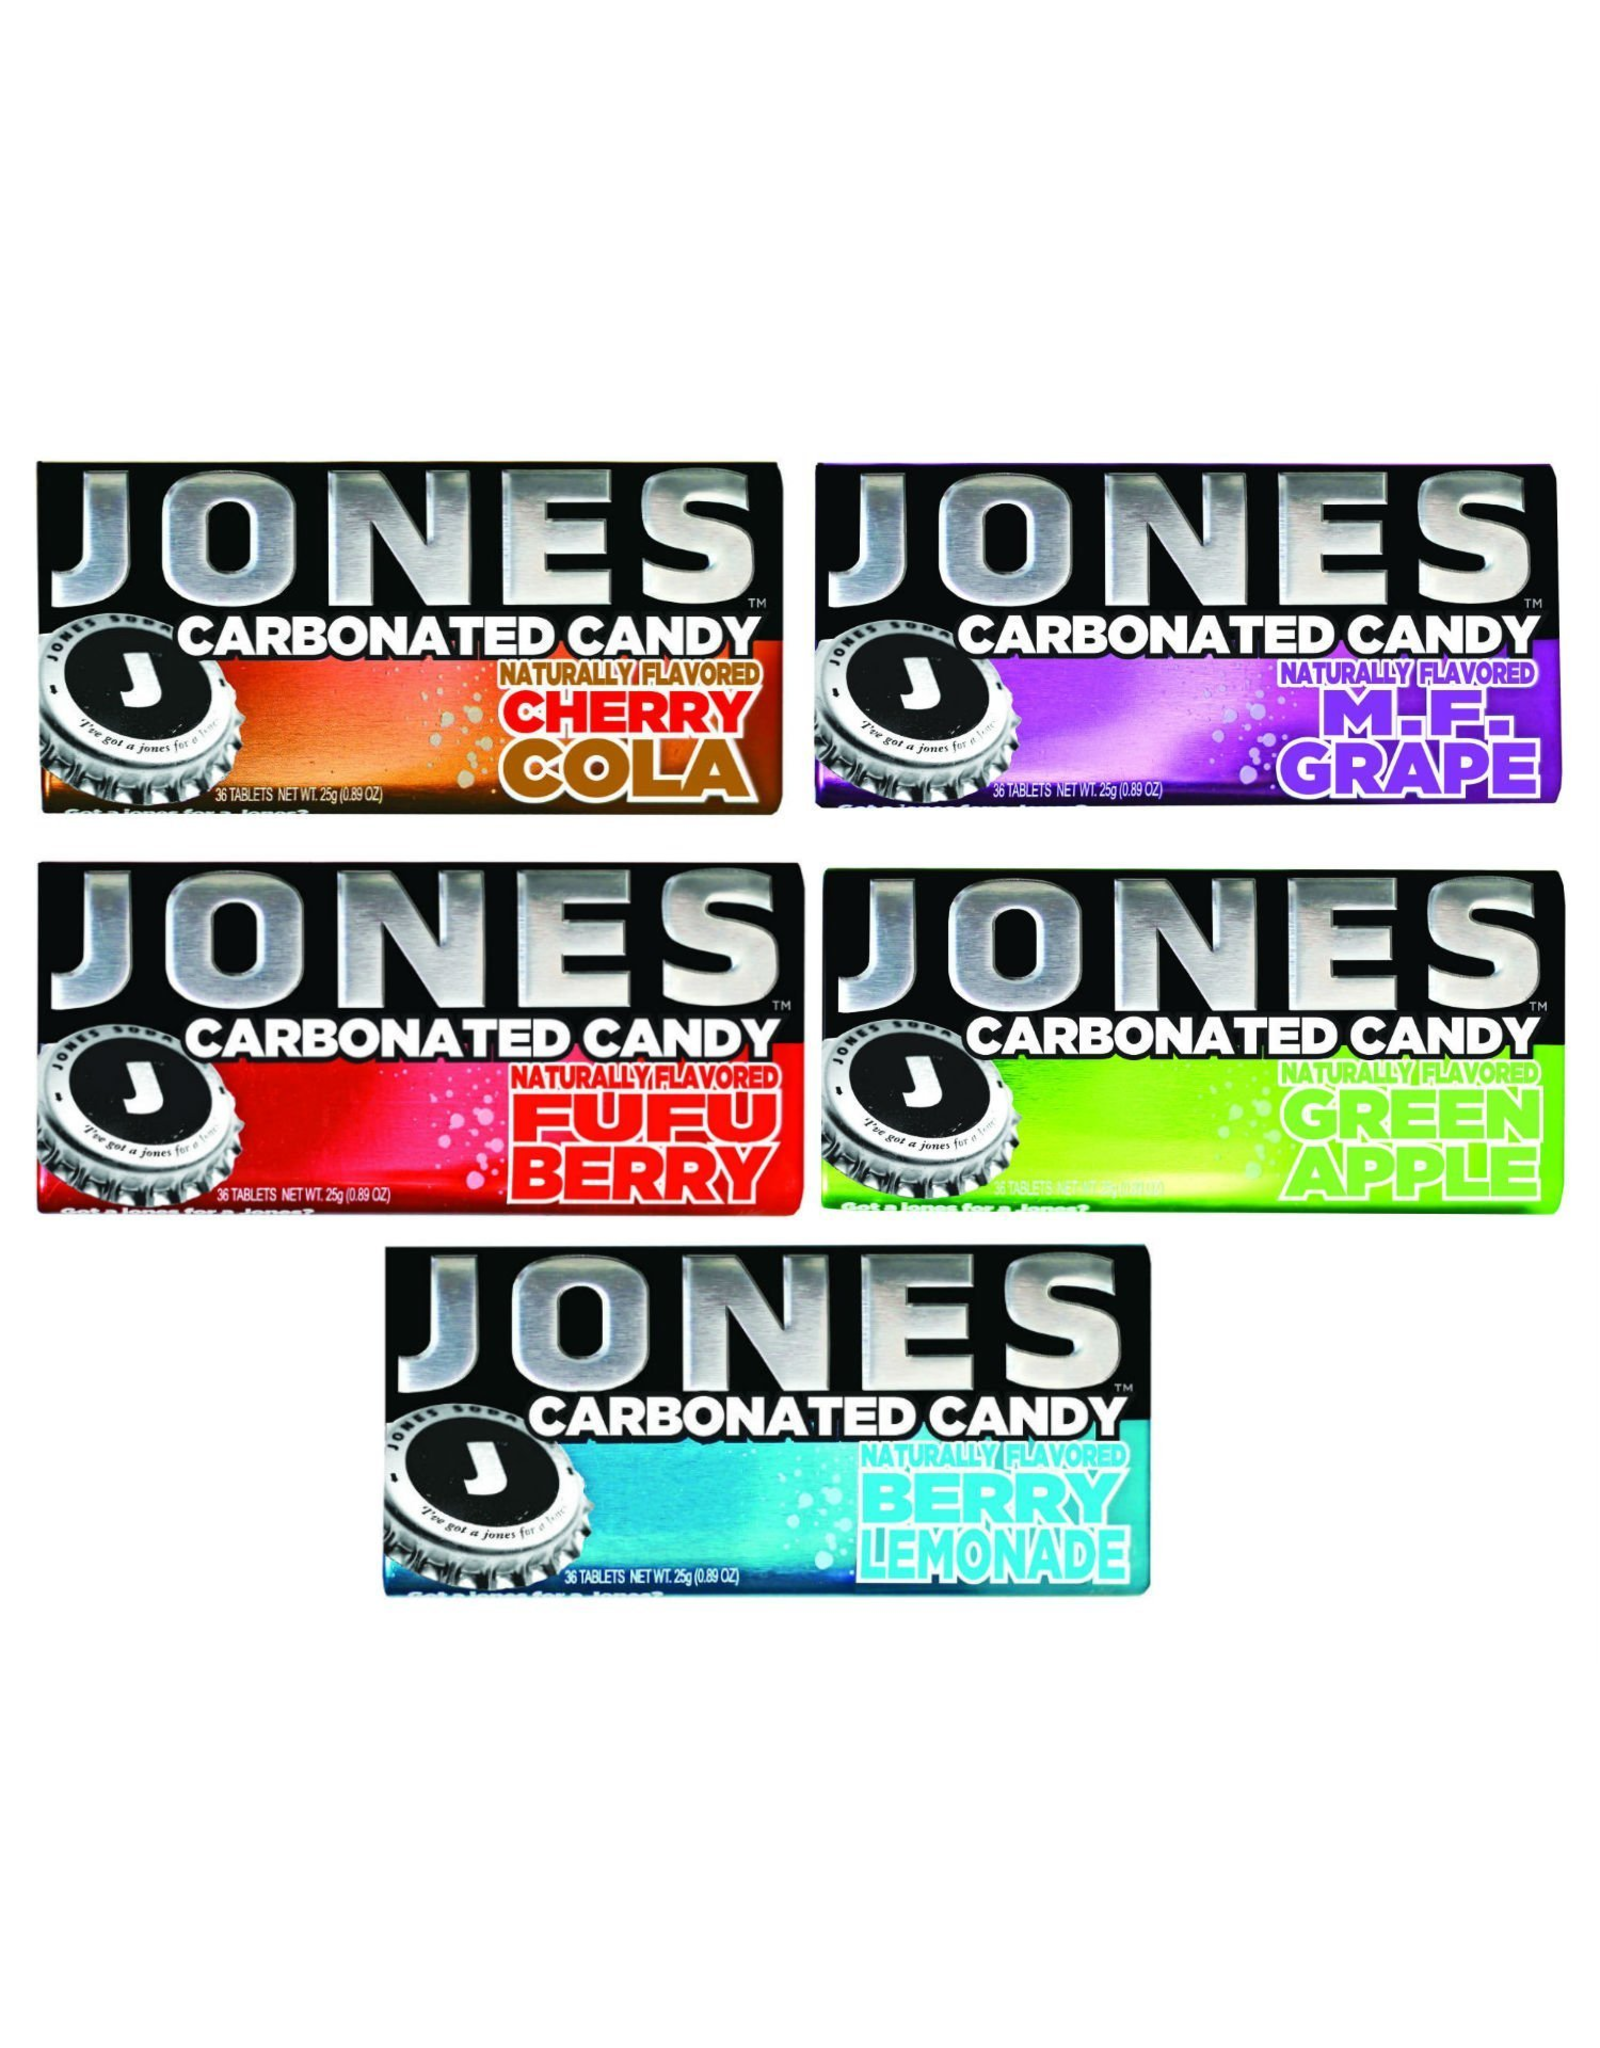 Jones Carbonated Candy - Fufu Berry - 28g